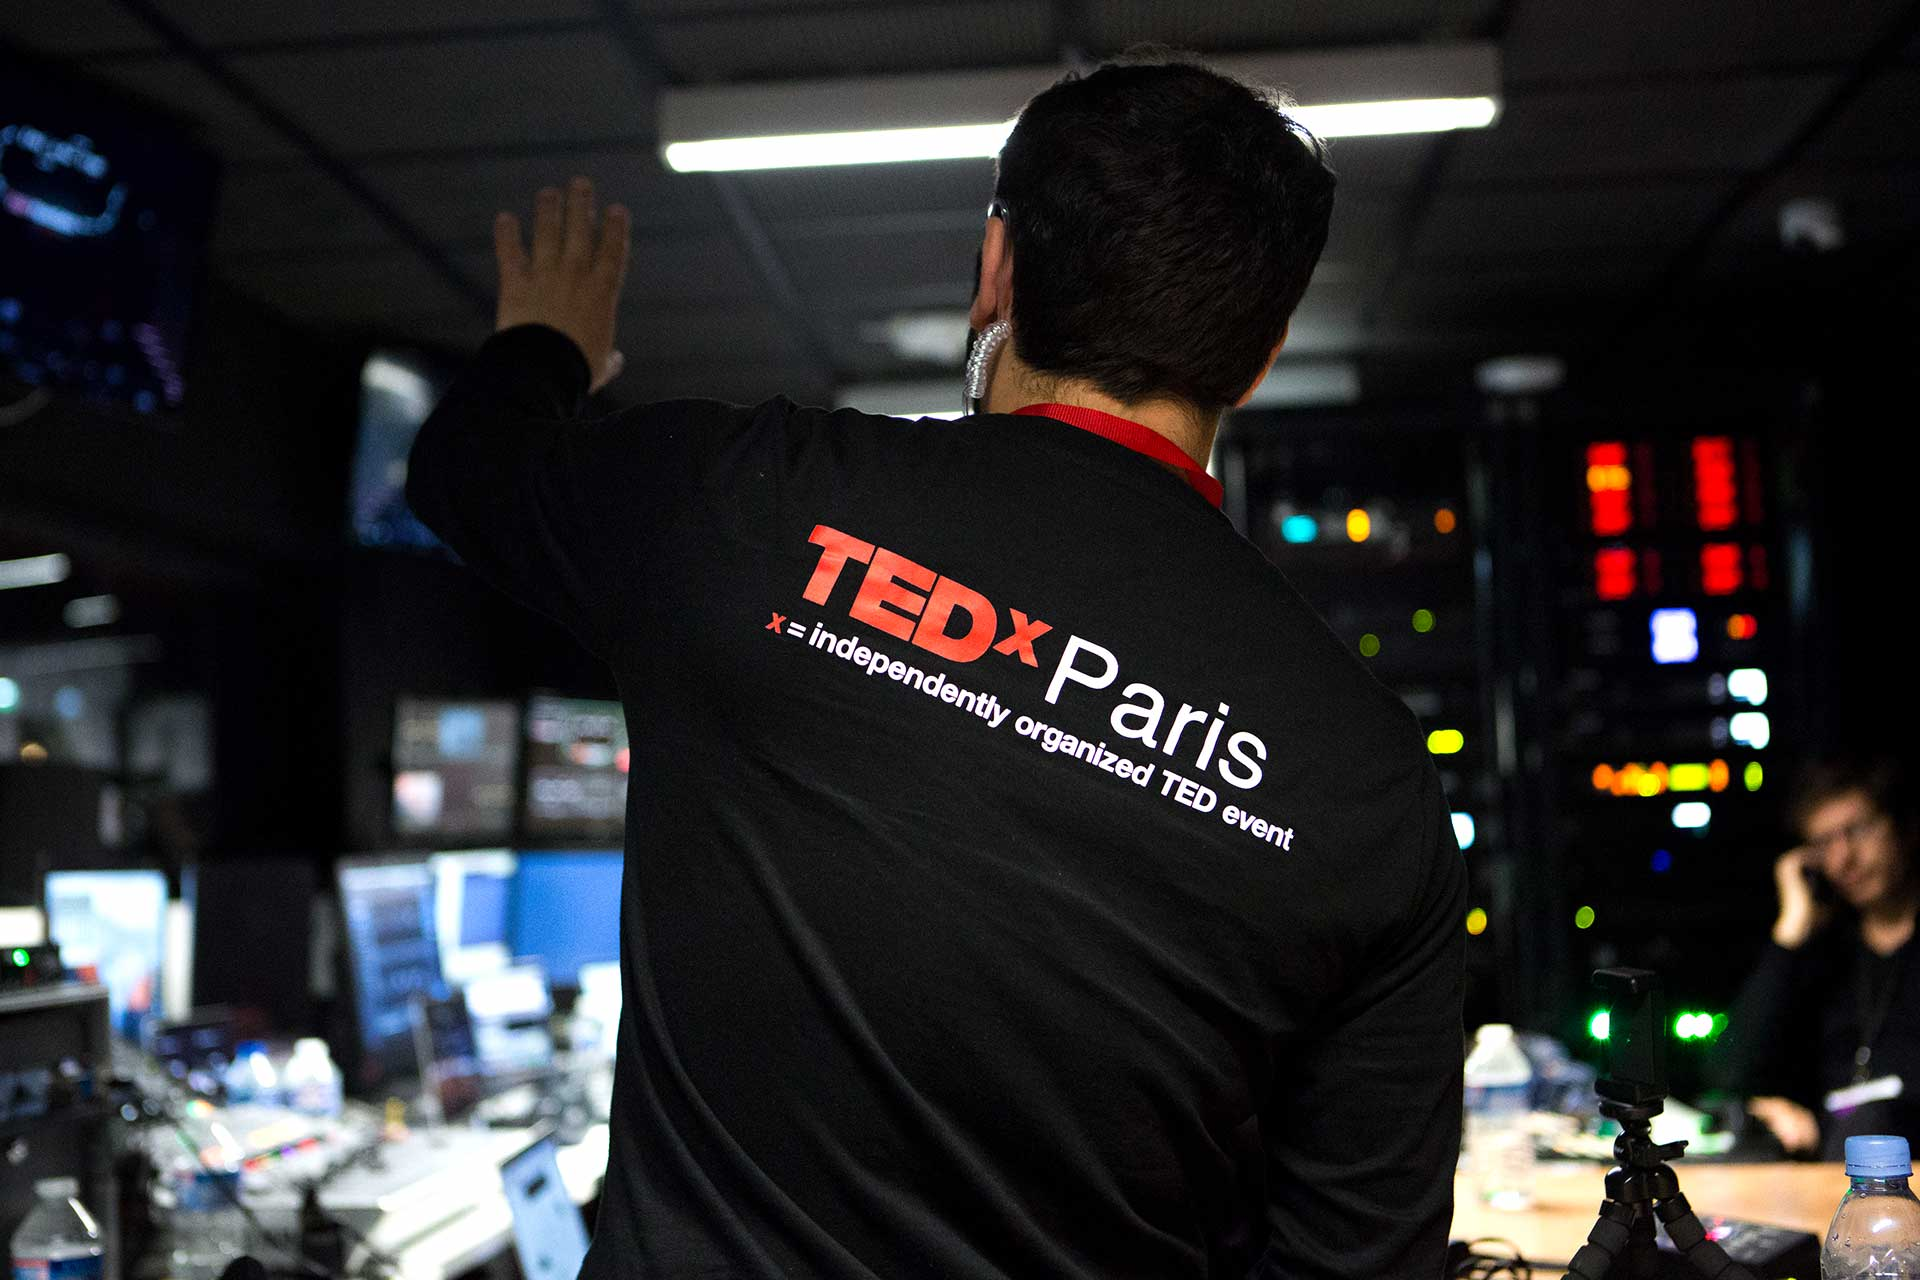 conference-TEDxParisSalon-2019-15.jpg